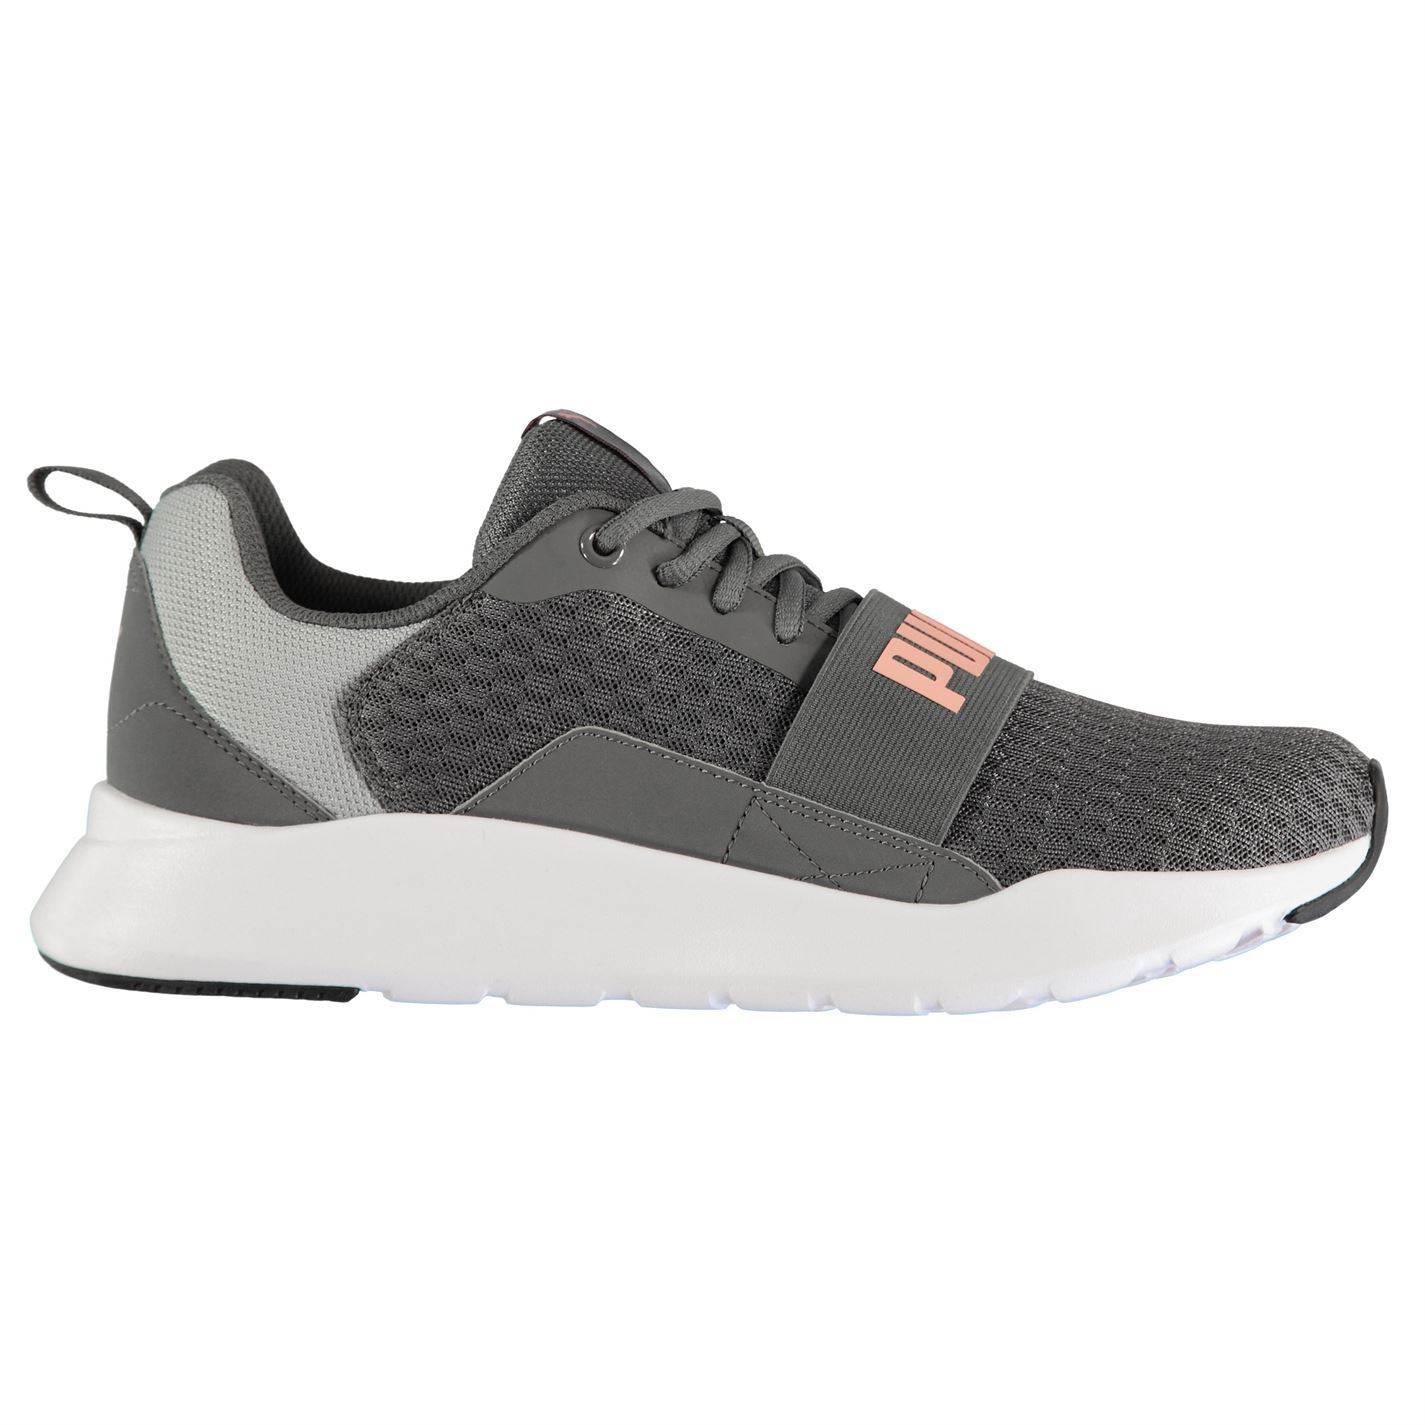 Details zu Puma Wired Training Shoes Womens Fitness Gym Workout Trainers Sneakers Footwear